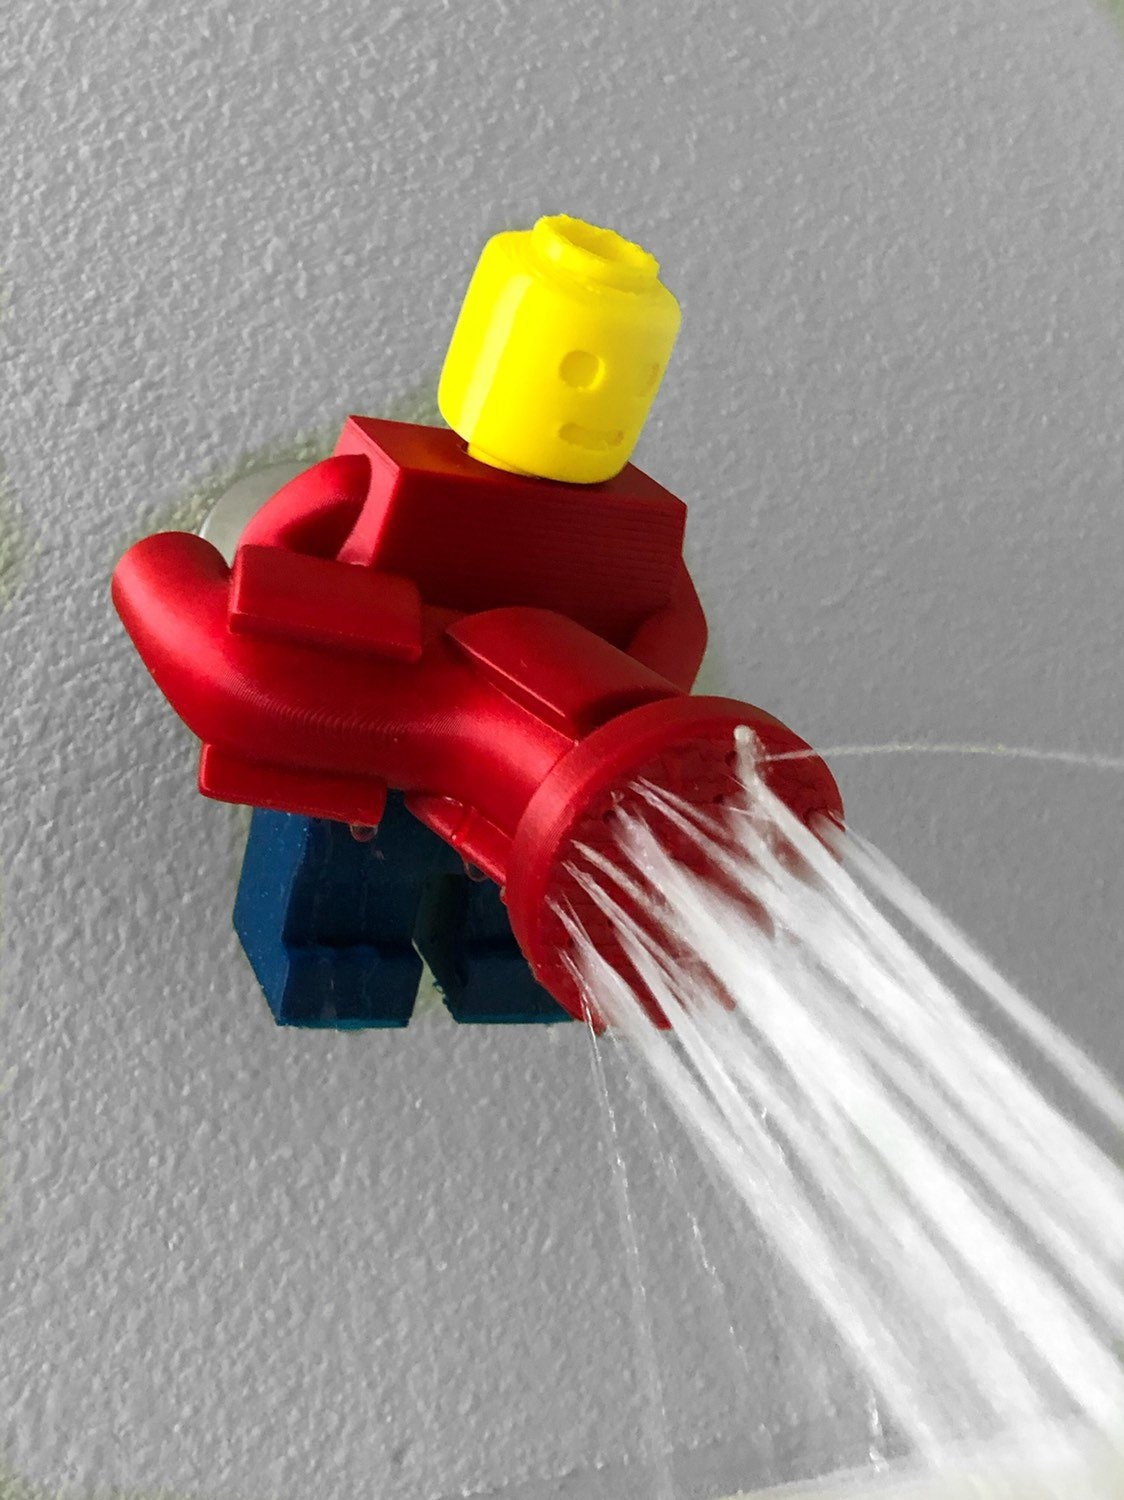 Lego Shower Head 3d Printed Lego Man Decor Lego